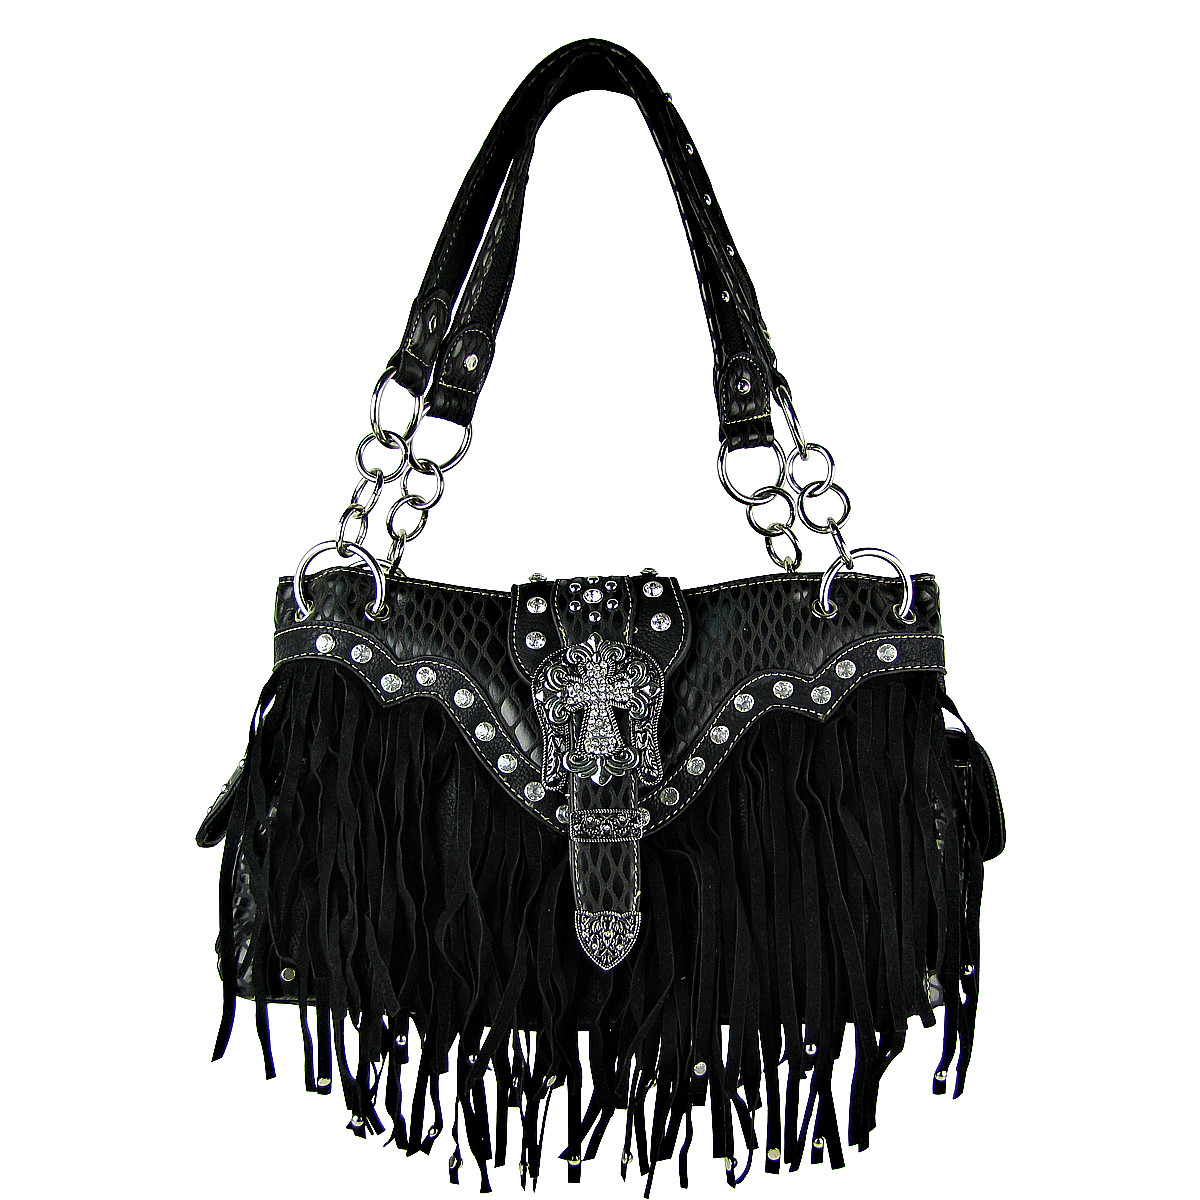 BLACK RHINESTONE BUCKLE CROSS FRINGE SHOULDER HANDBAG HB1-HL12164-1BLK